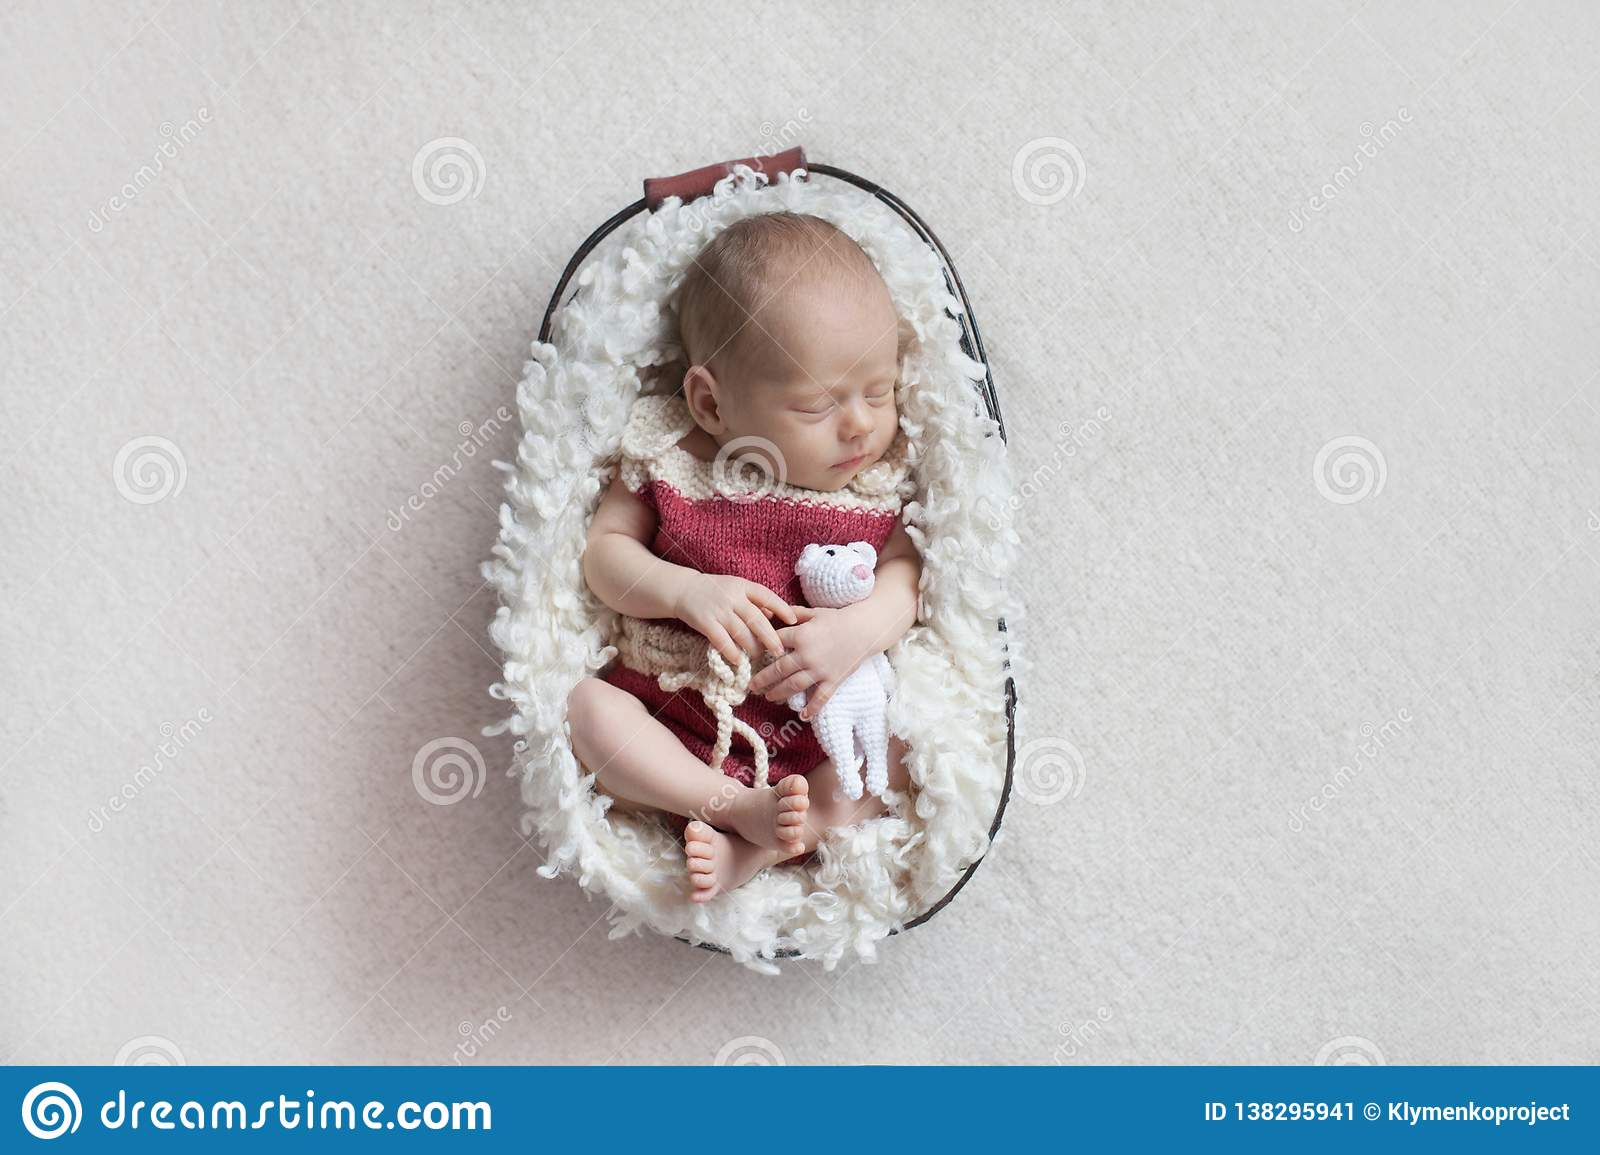 A newborn baby sleeps in a basket in a pink body with a small toy.